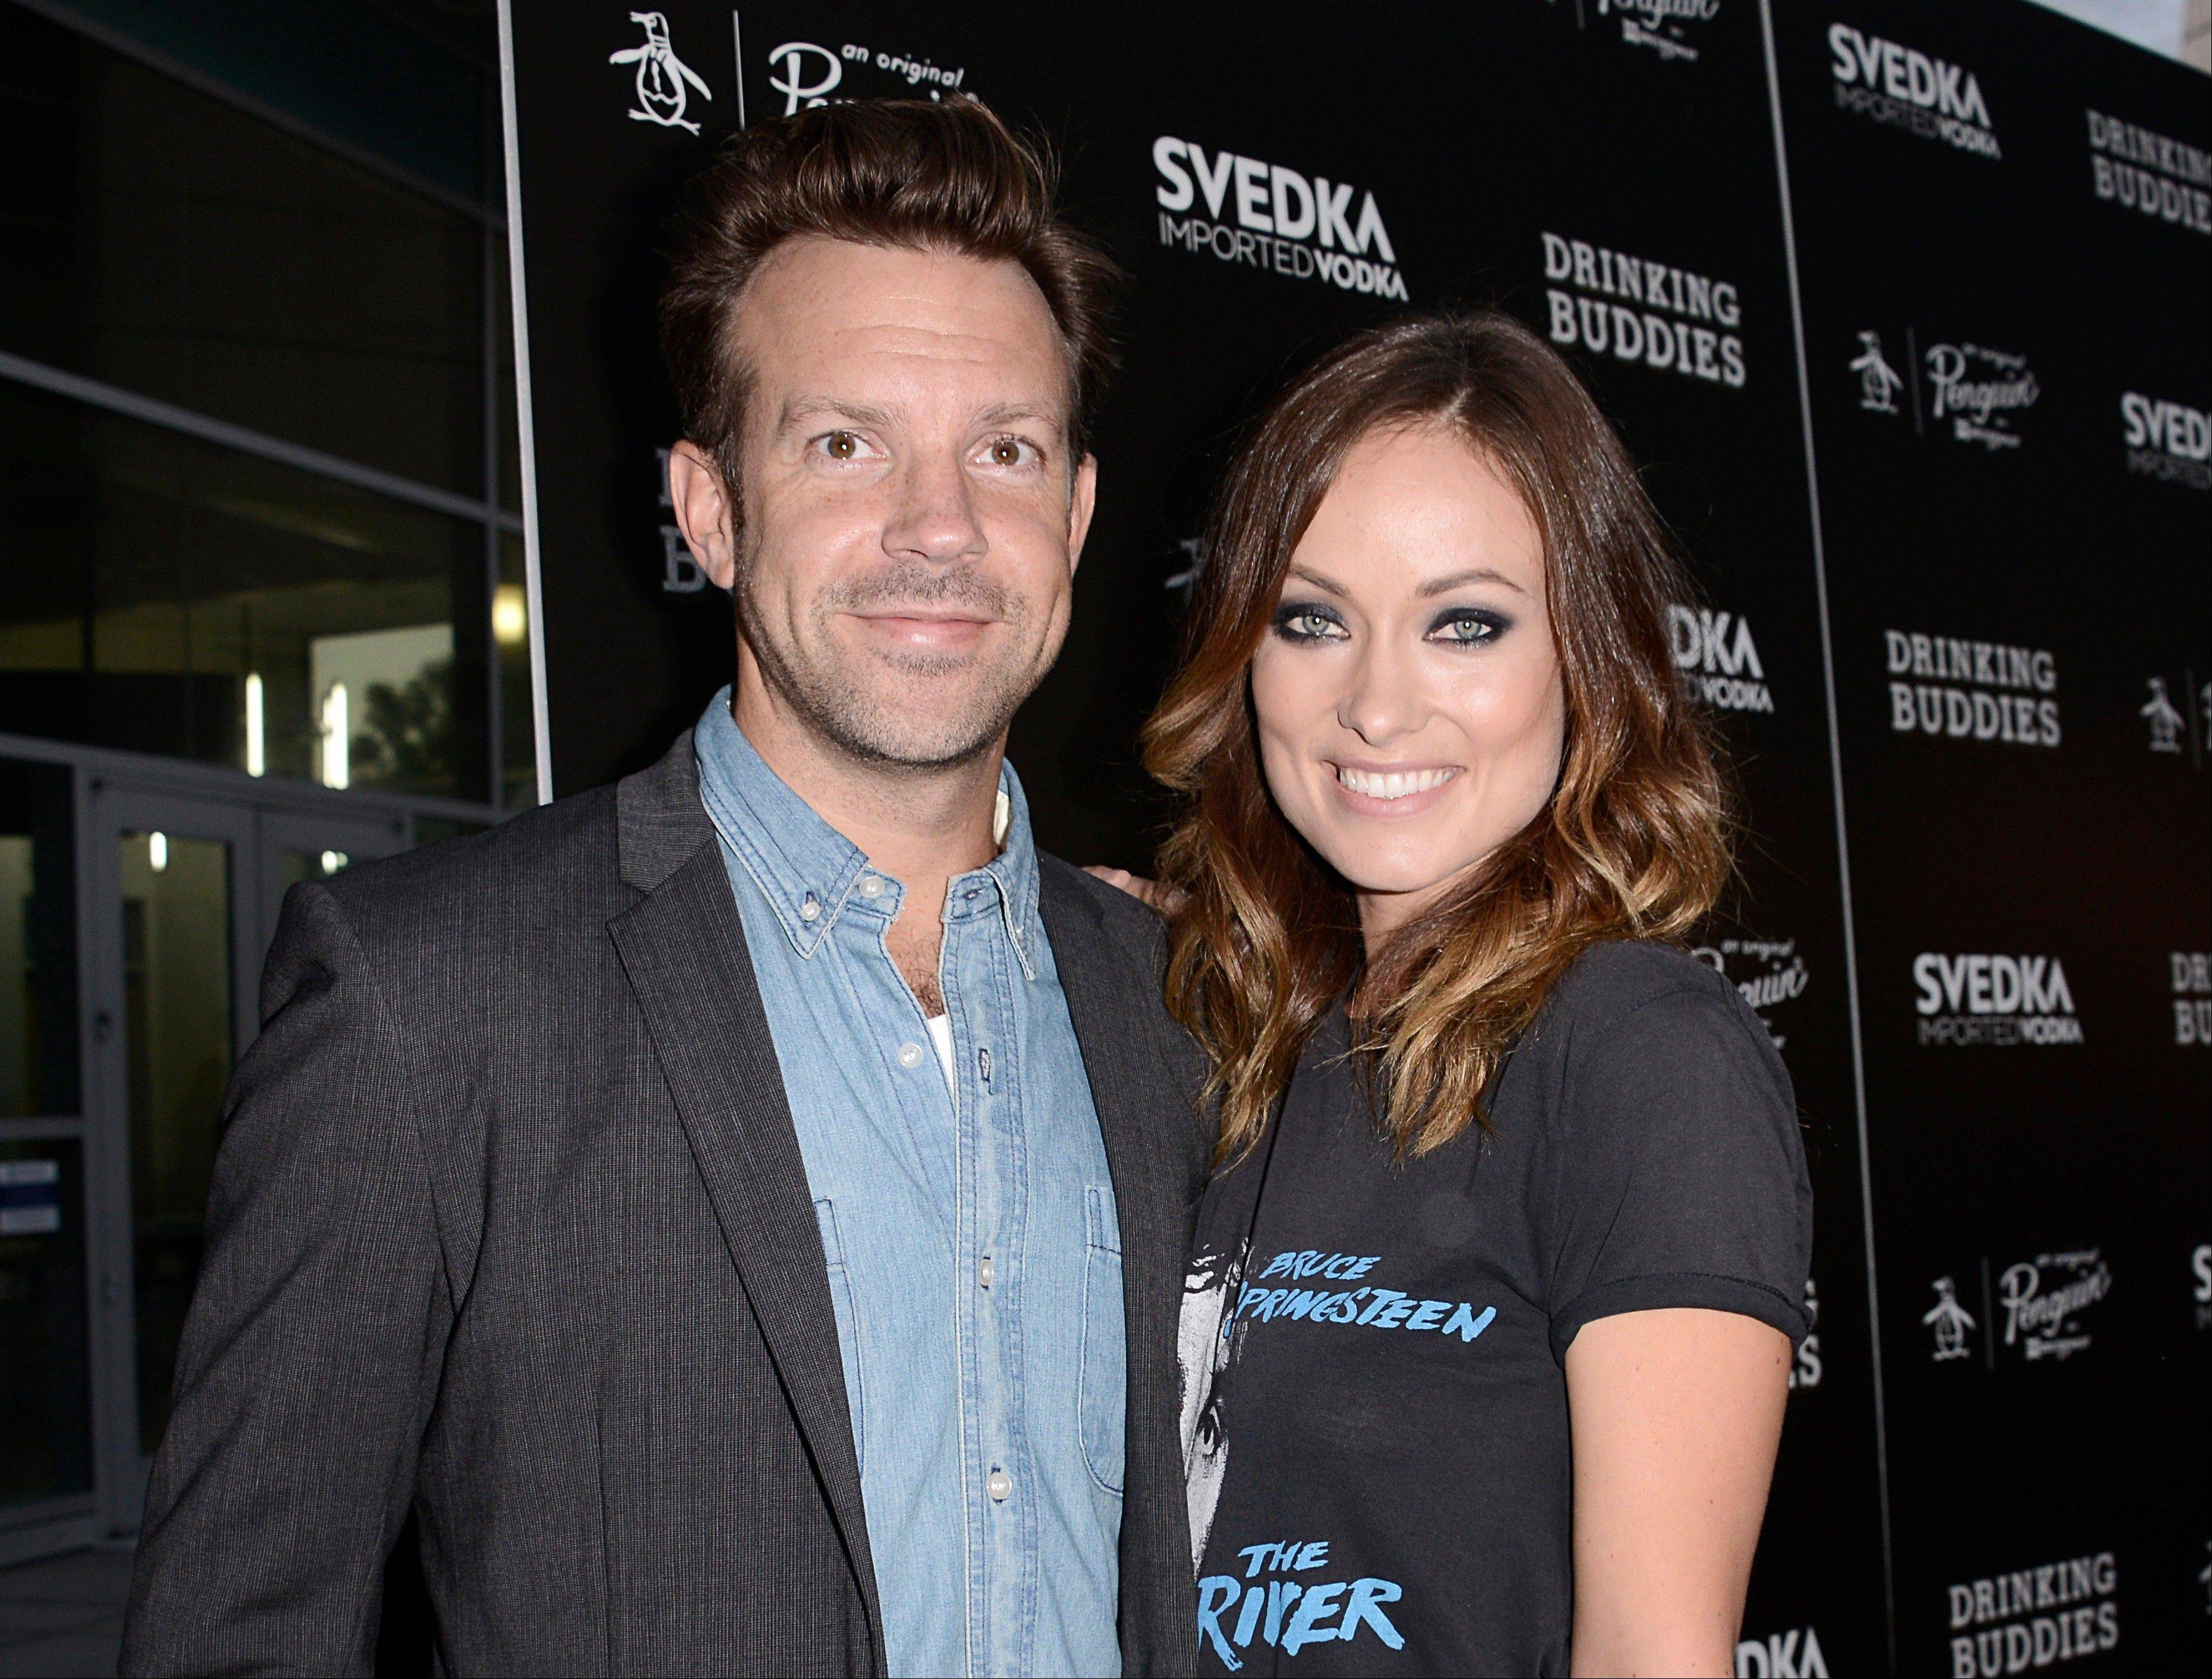 Jason Sudeikis and Olivia Wilde arrive on the red carpet at the screening of the feature film �Drinking Buddies� at the ArcLight Hollywood in Los Angeles. Wilde and Sudeikis have been engaged since very early this year but have yet to spill details about their wedding plans � they�re too busy.